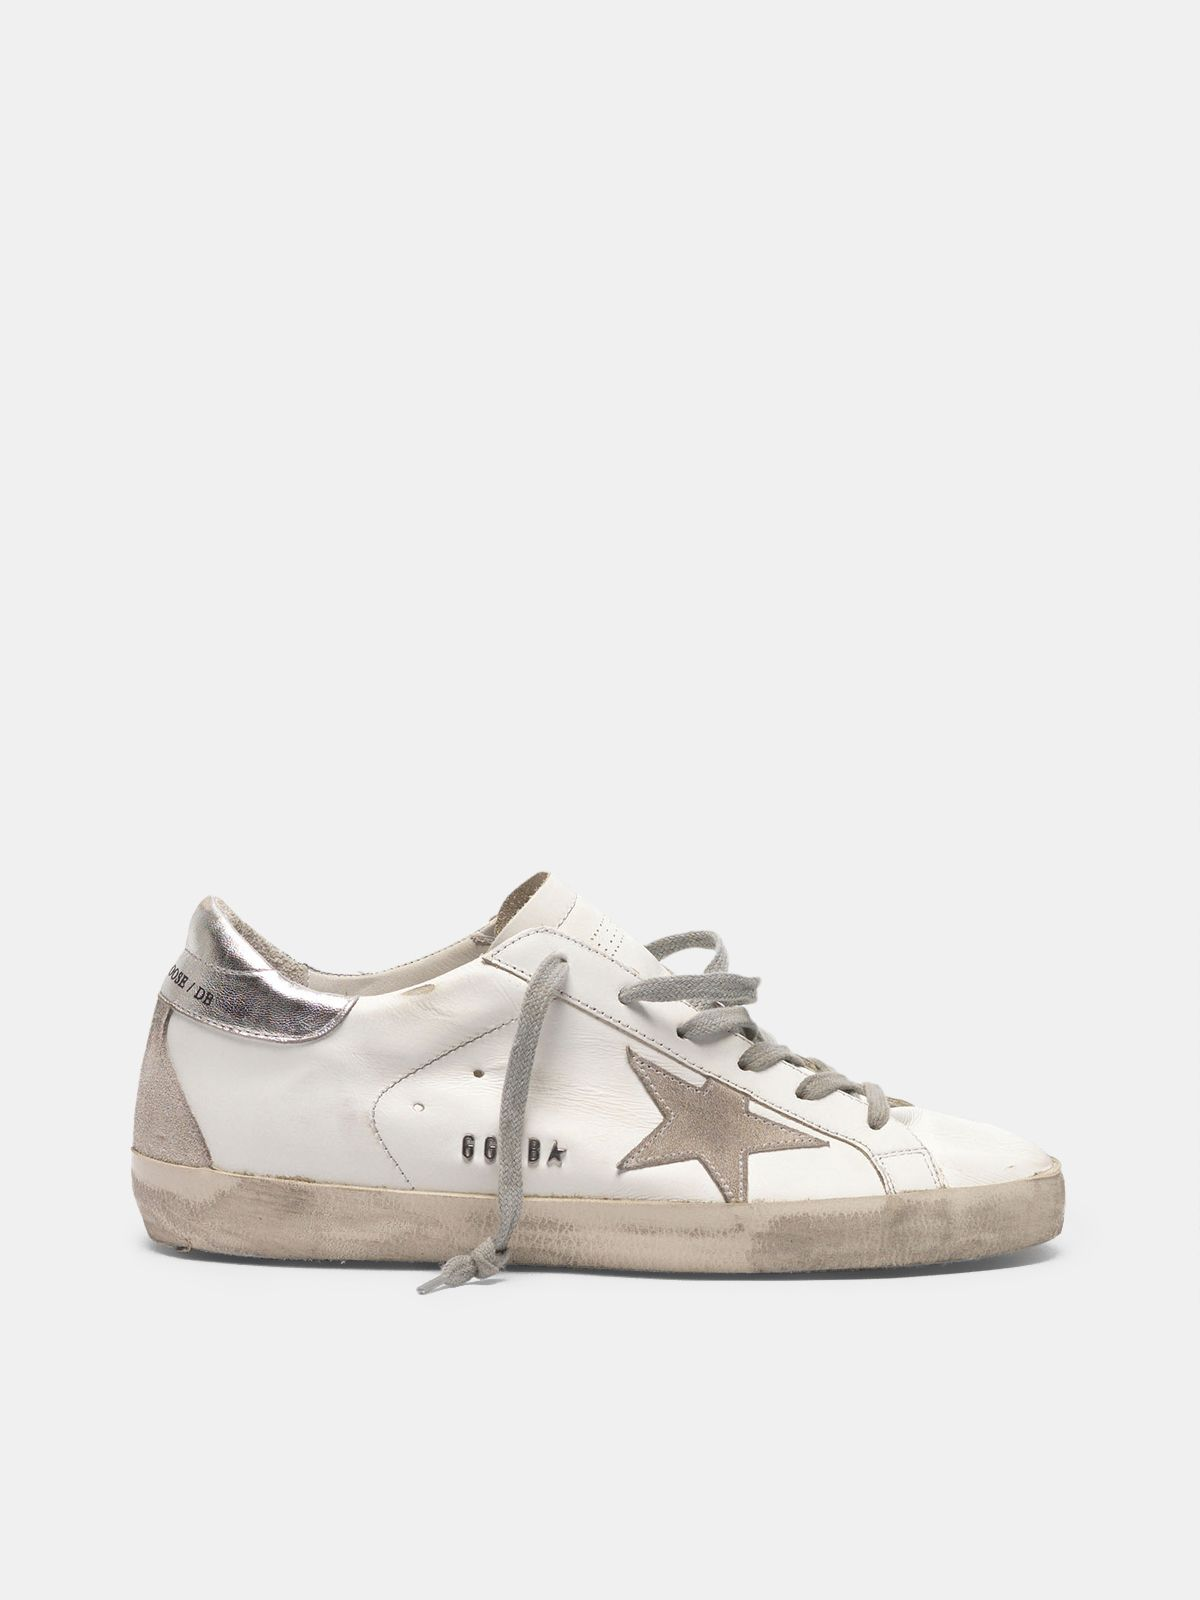 Golden Goose - Super-Star sneakers with silver-coloured heel tab and metal stud lettering in